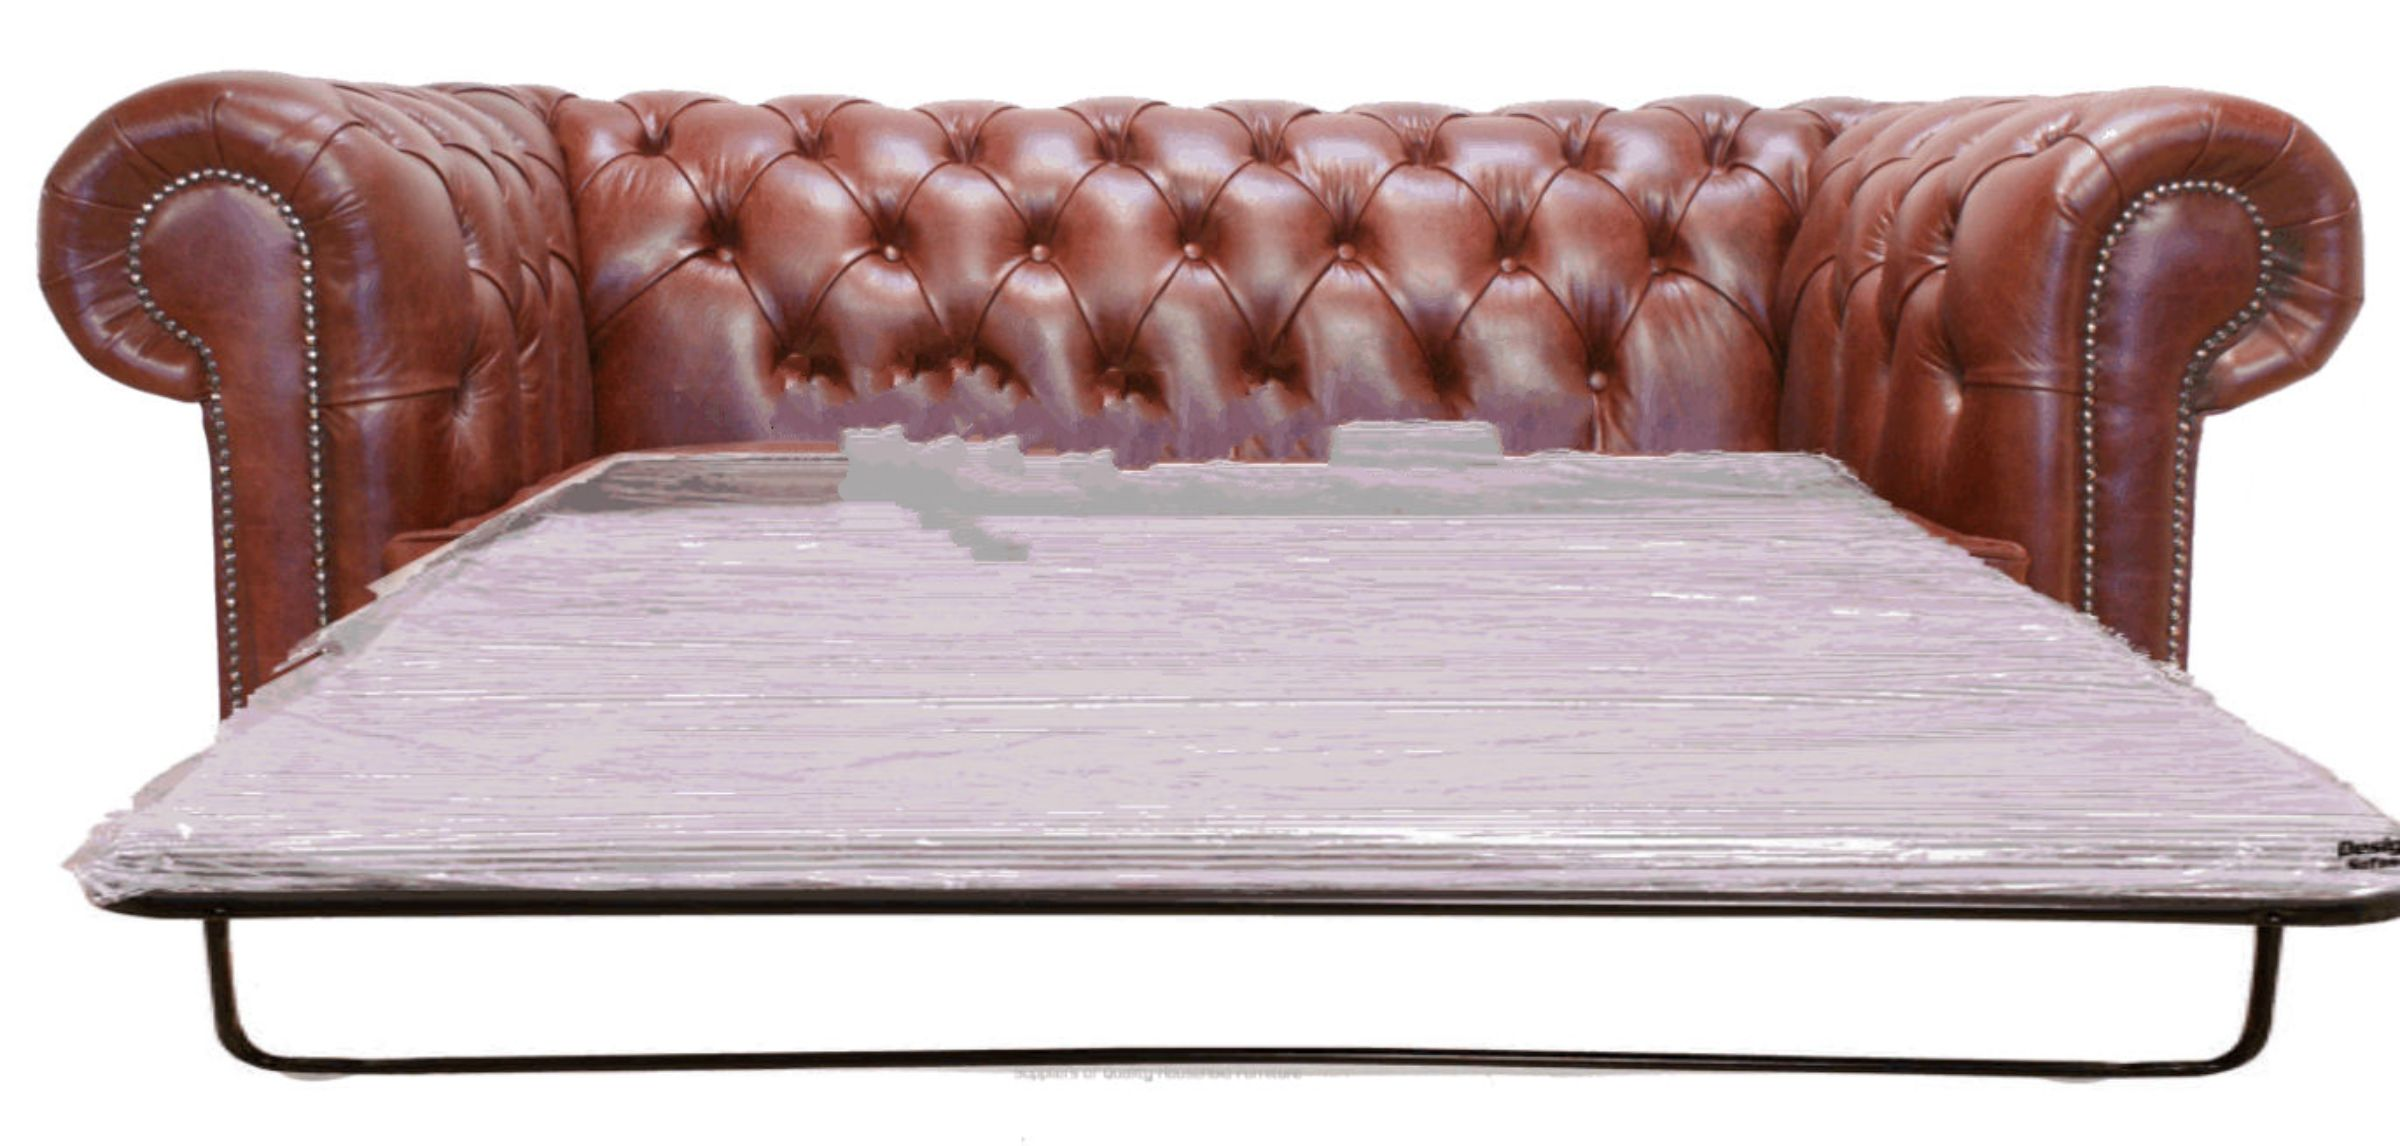 Chestnut Leather Chesterfield Sofa Bed Designersofas4u